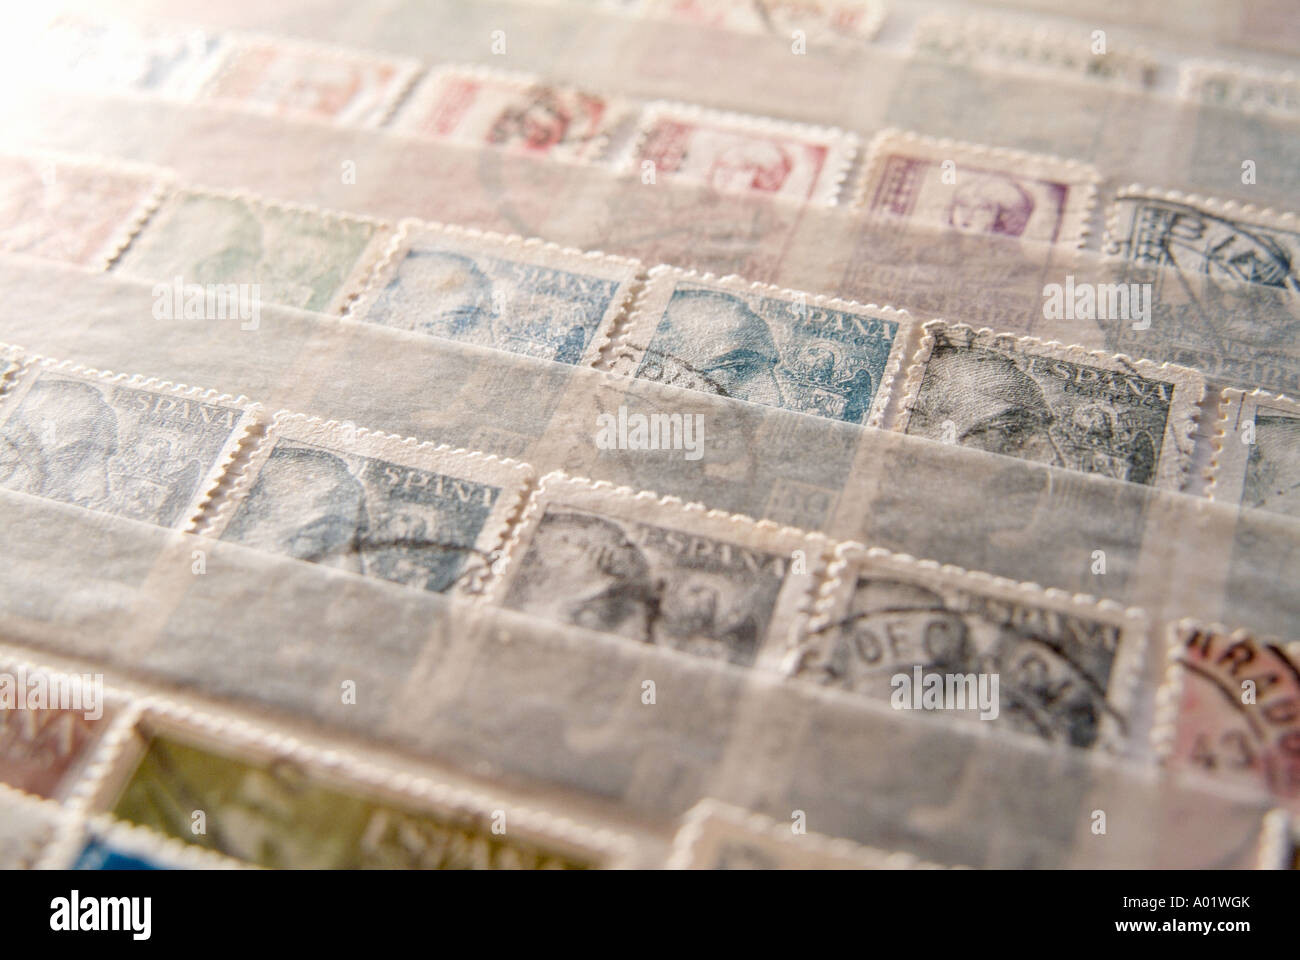 Old spanish postage stamps - Stock Image